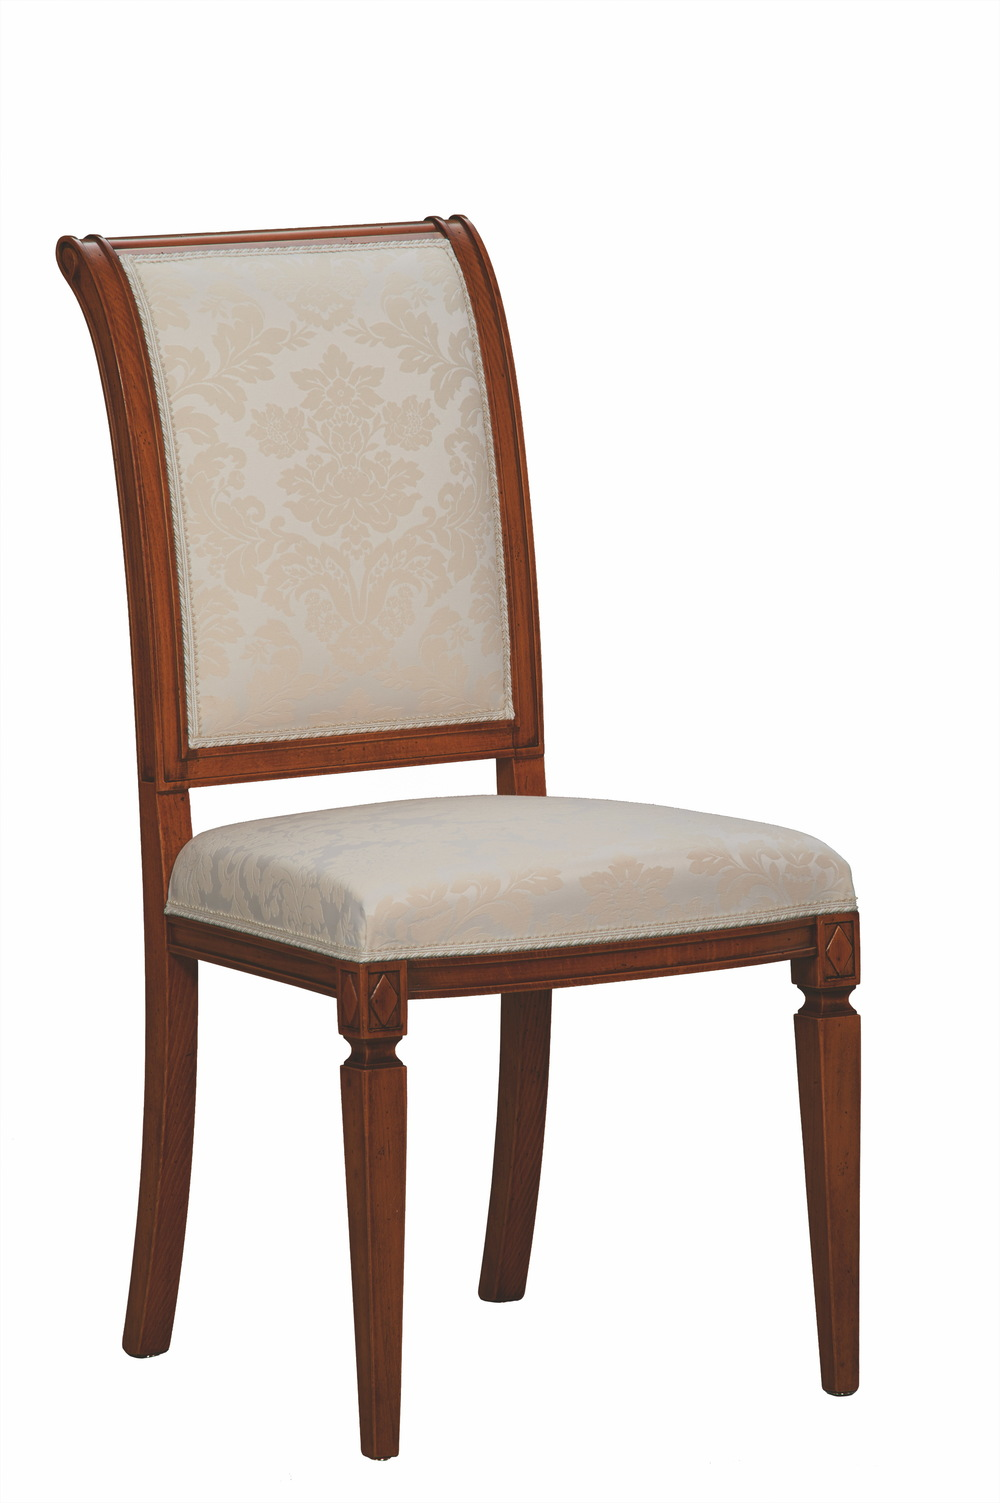 Selva - Chair